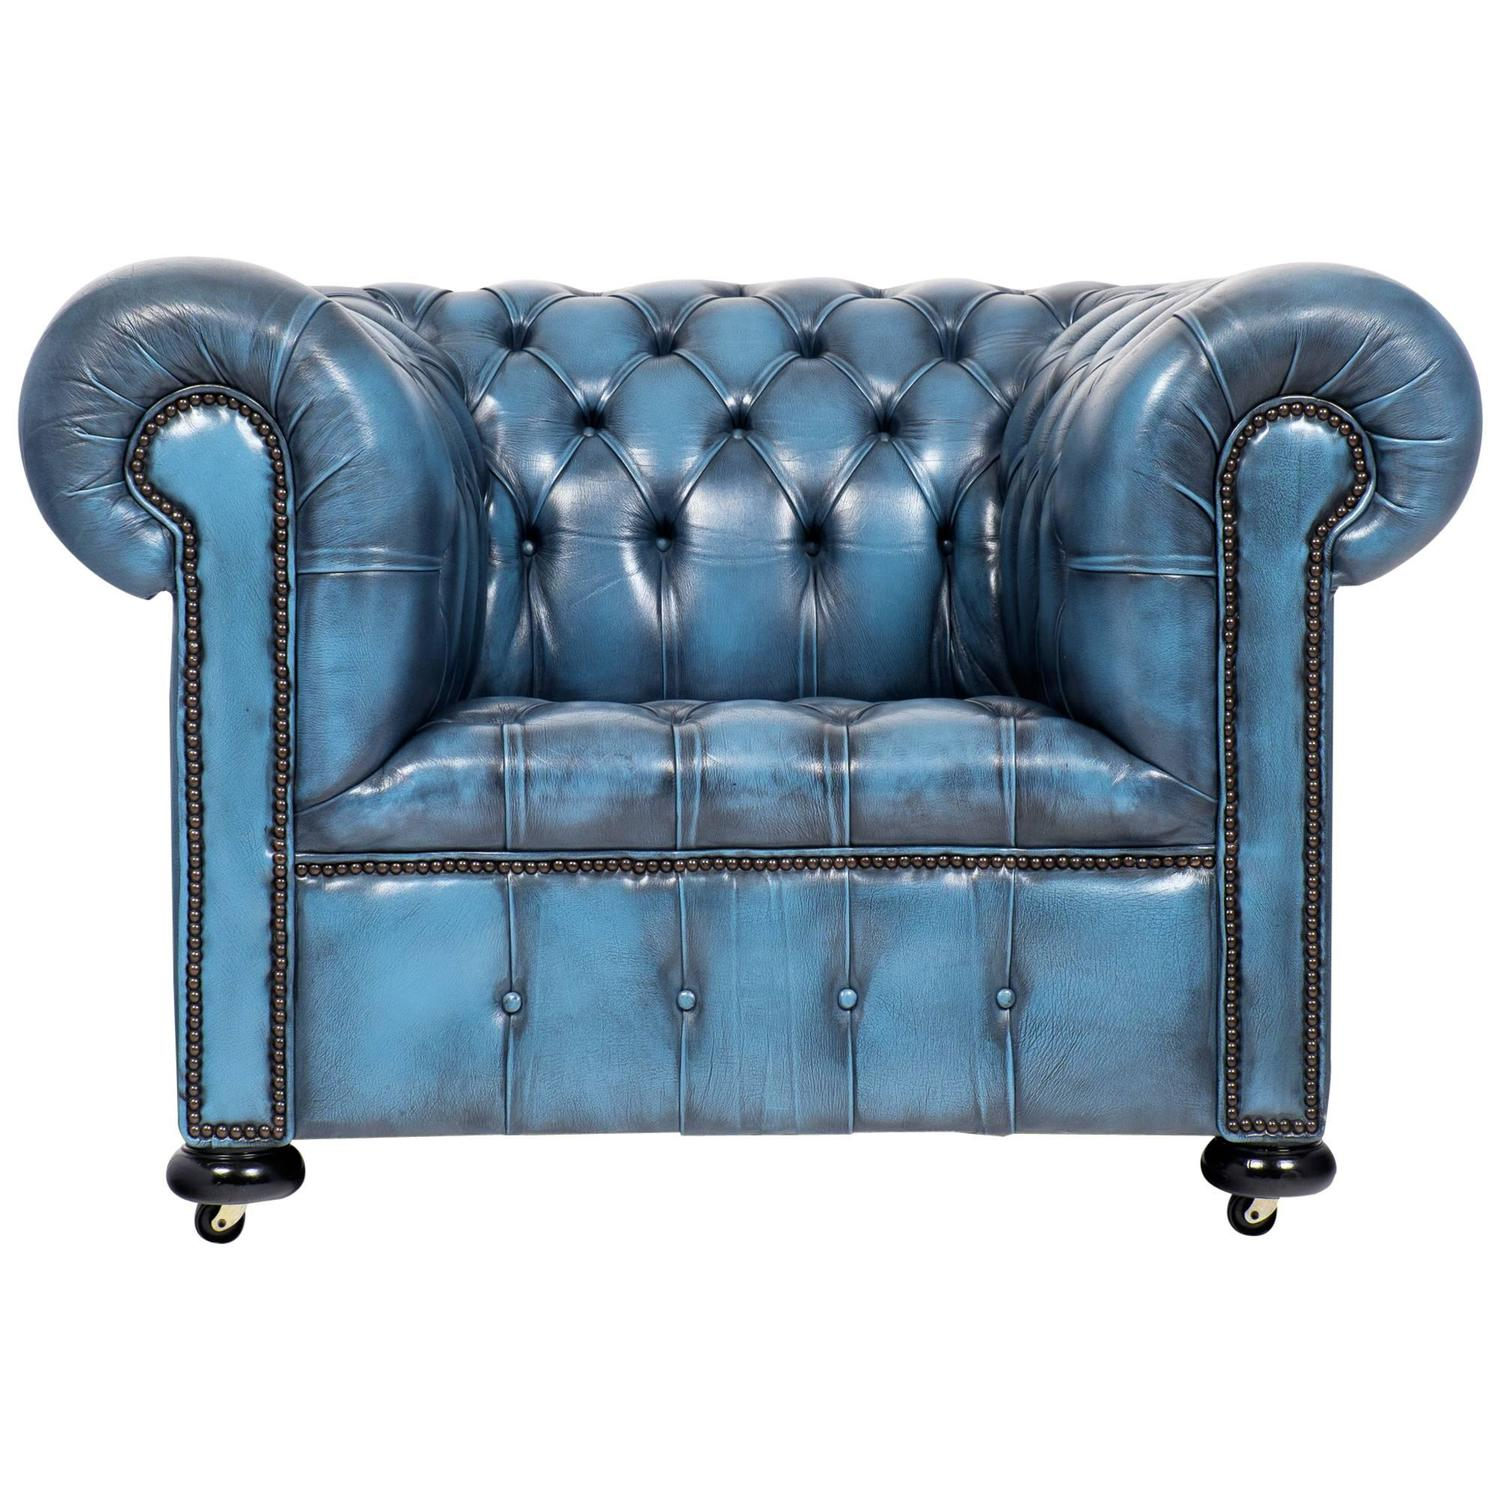 Vintage Steel Blue Leather Chesterfield Club Chair At 1stdibs